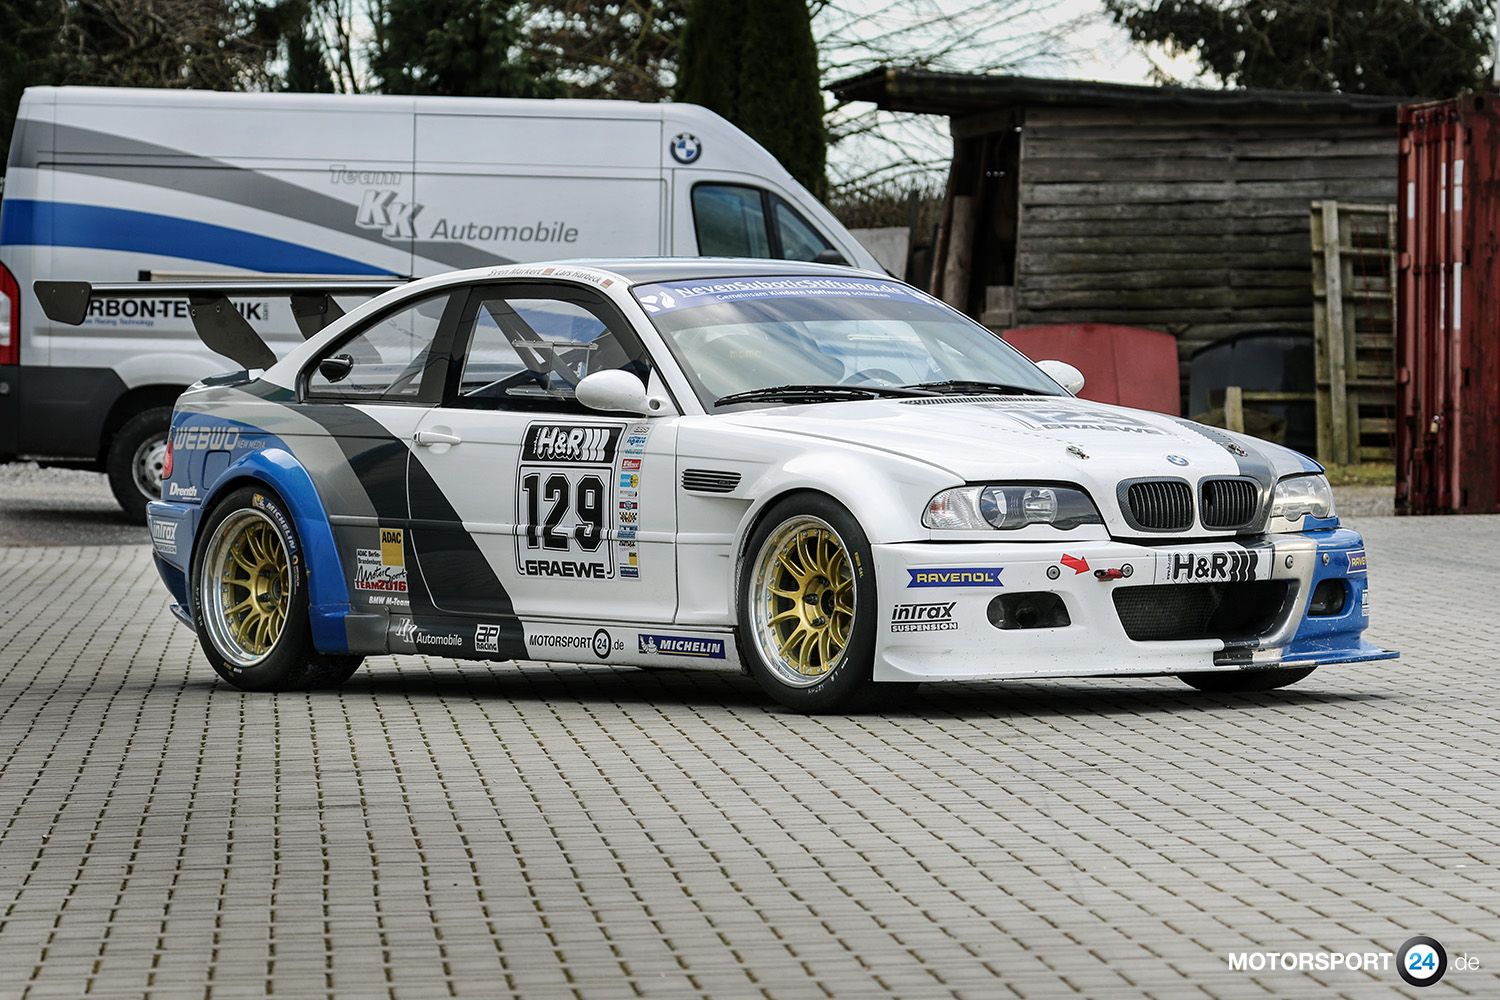 For Sale Bmw M3 E46 Gtr Rennwagen Bmw M Tuning Teile